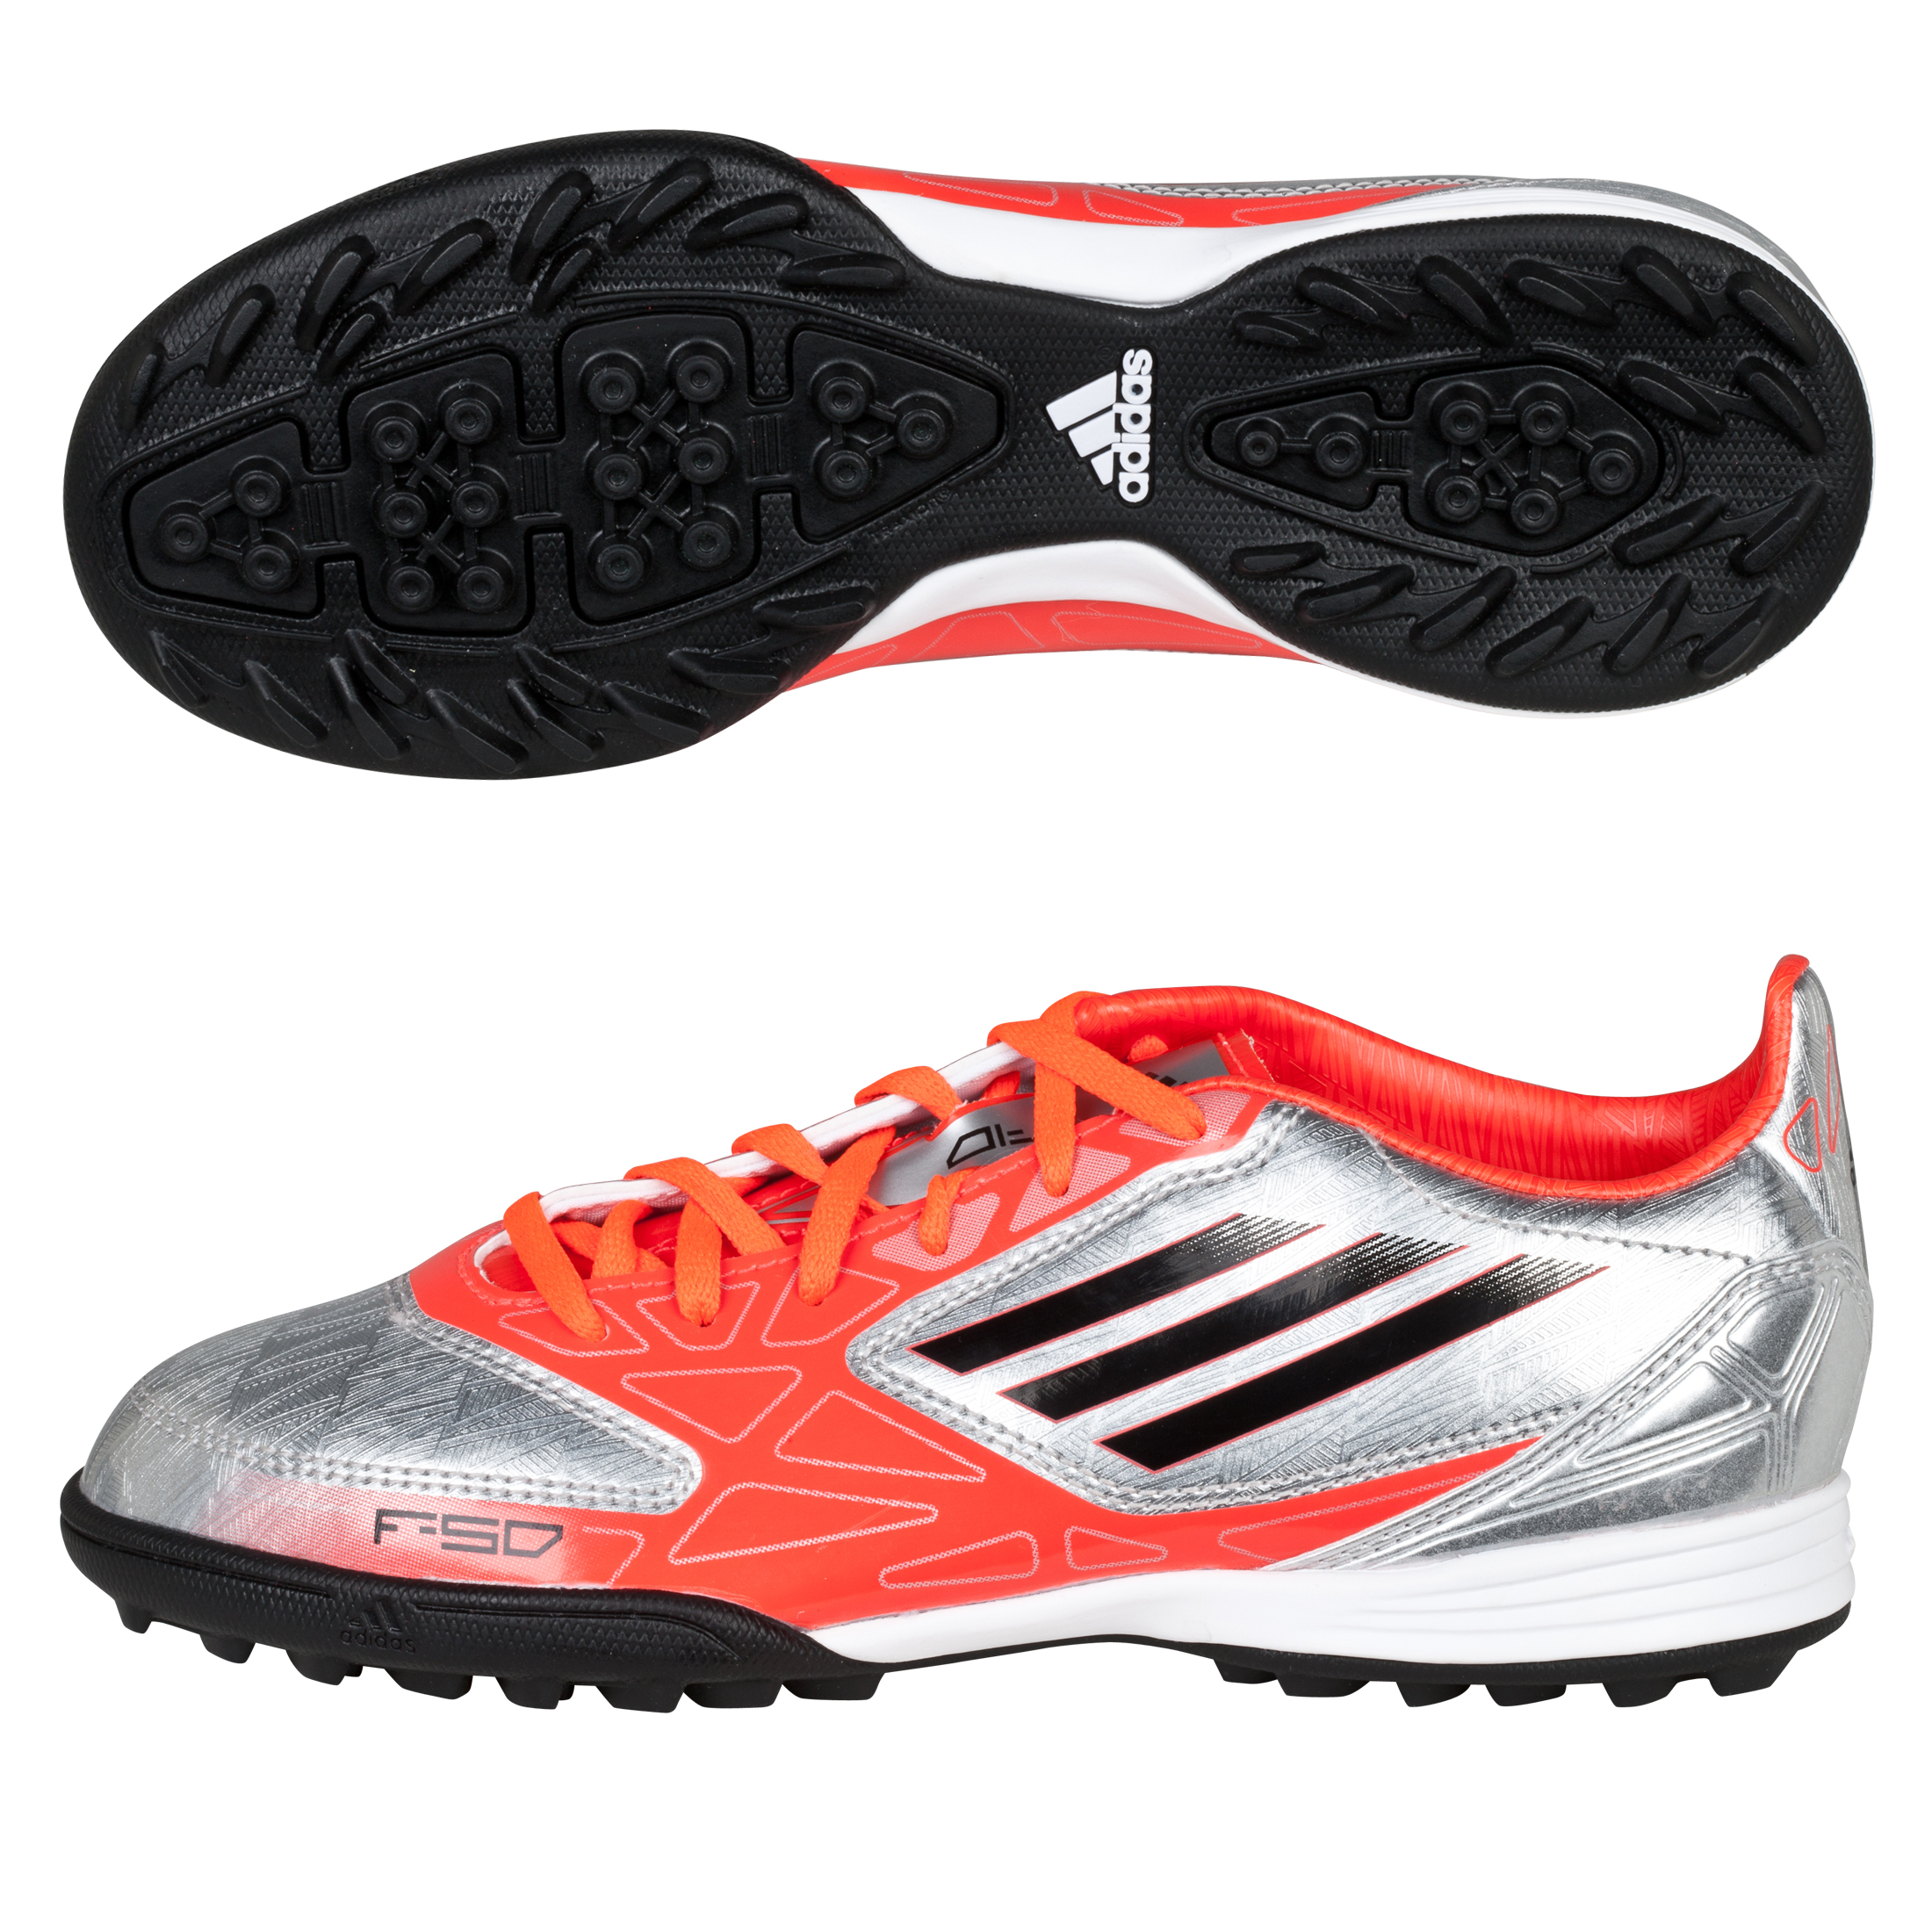 Adidas F10 TRX Astro Turf Trainers - Metallic Silver/Black/Infrared - Kids